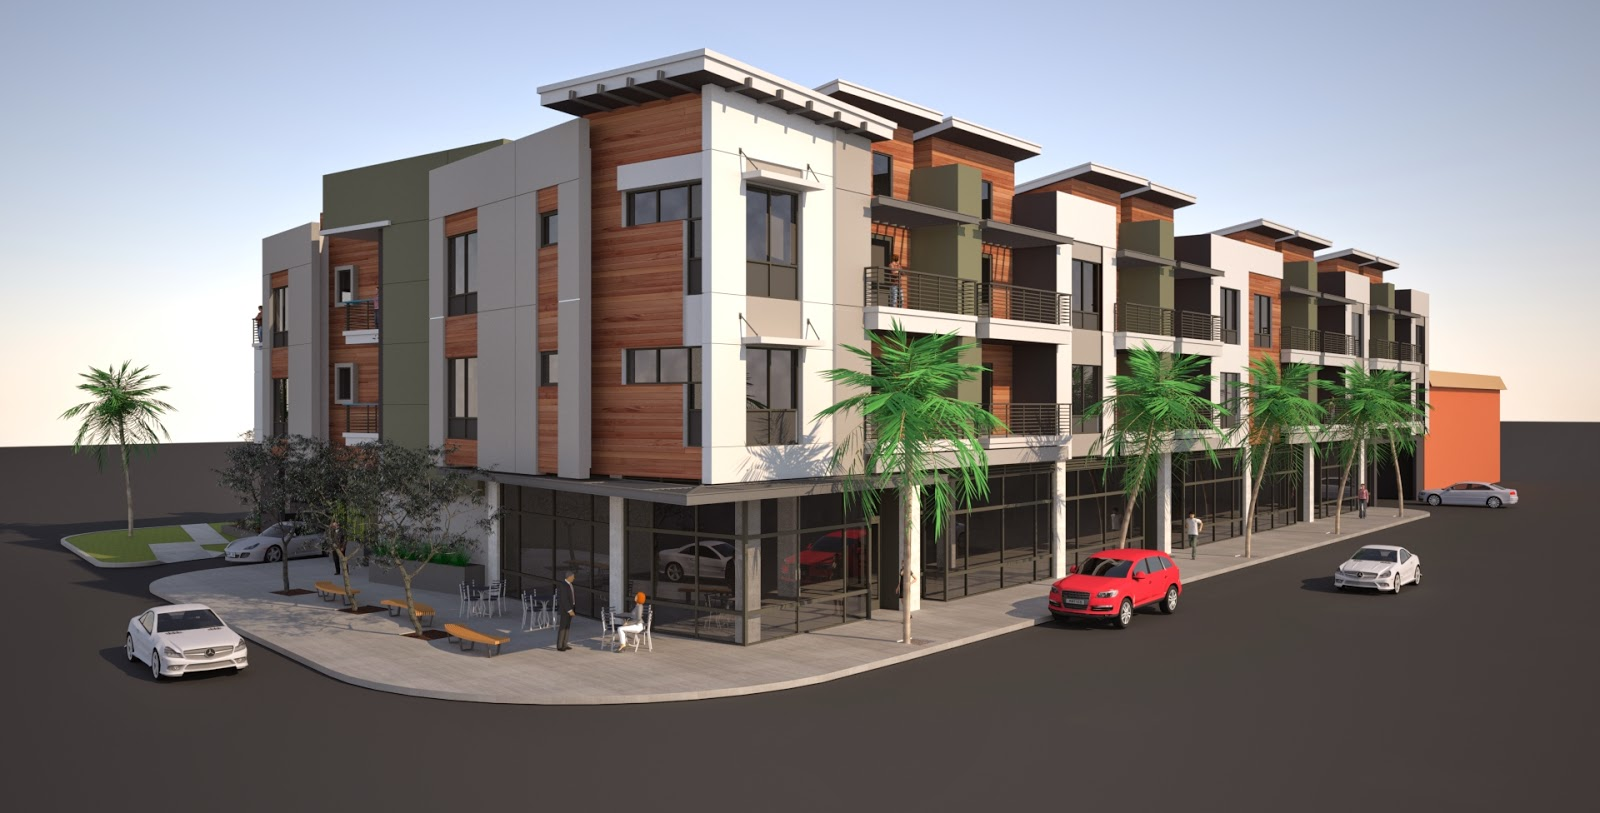 Building Los Angeles Mixed Use Oliver Apartments Rise In